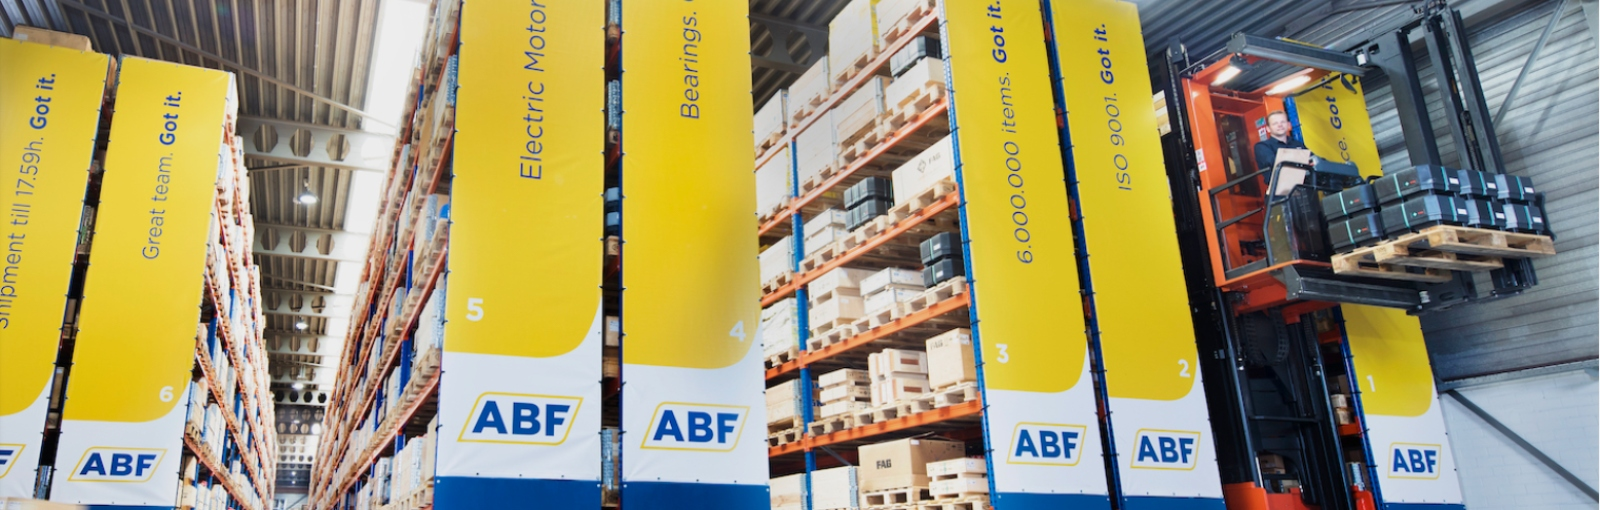 ABF warehouse